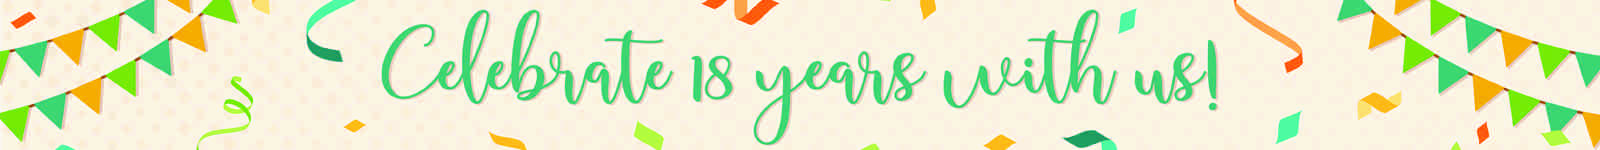 Celebrate 18 years with us